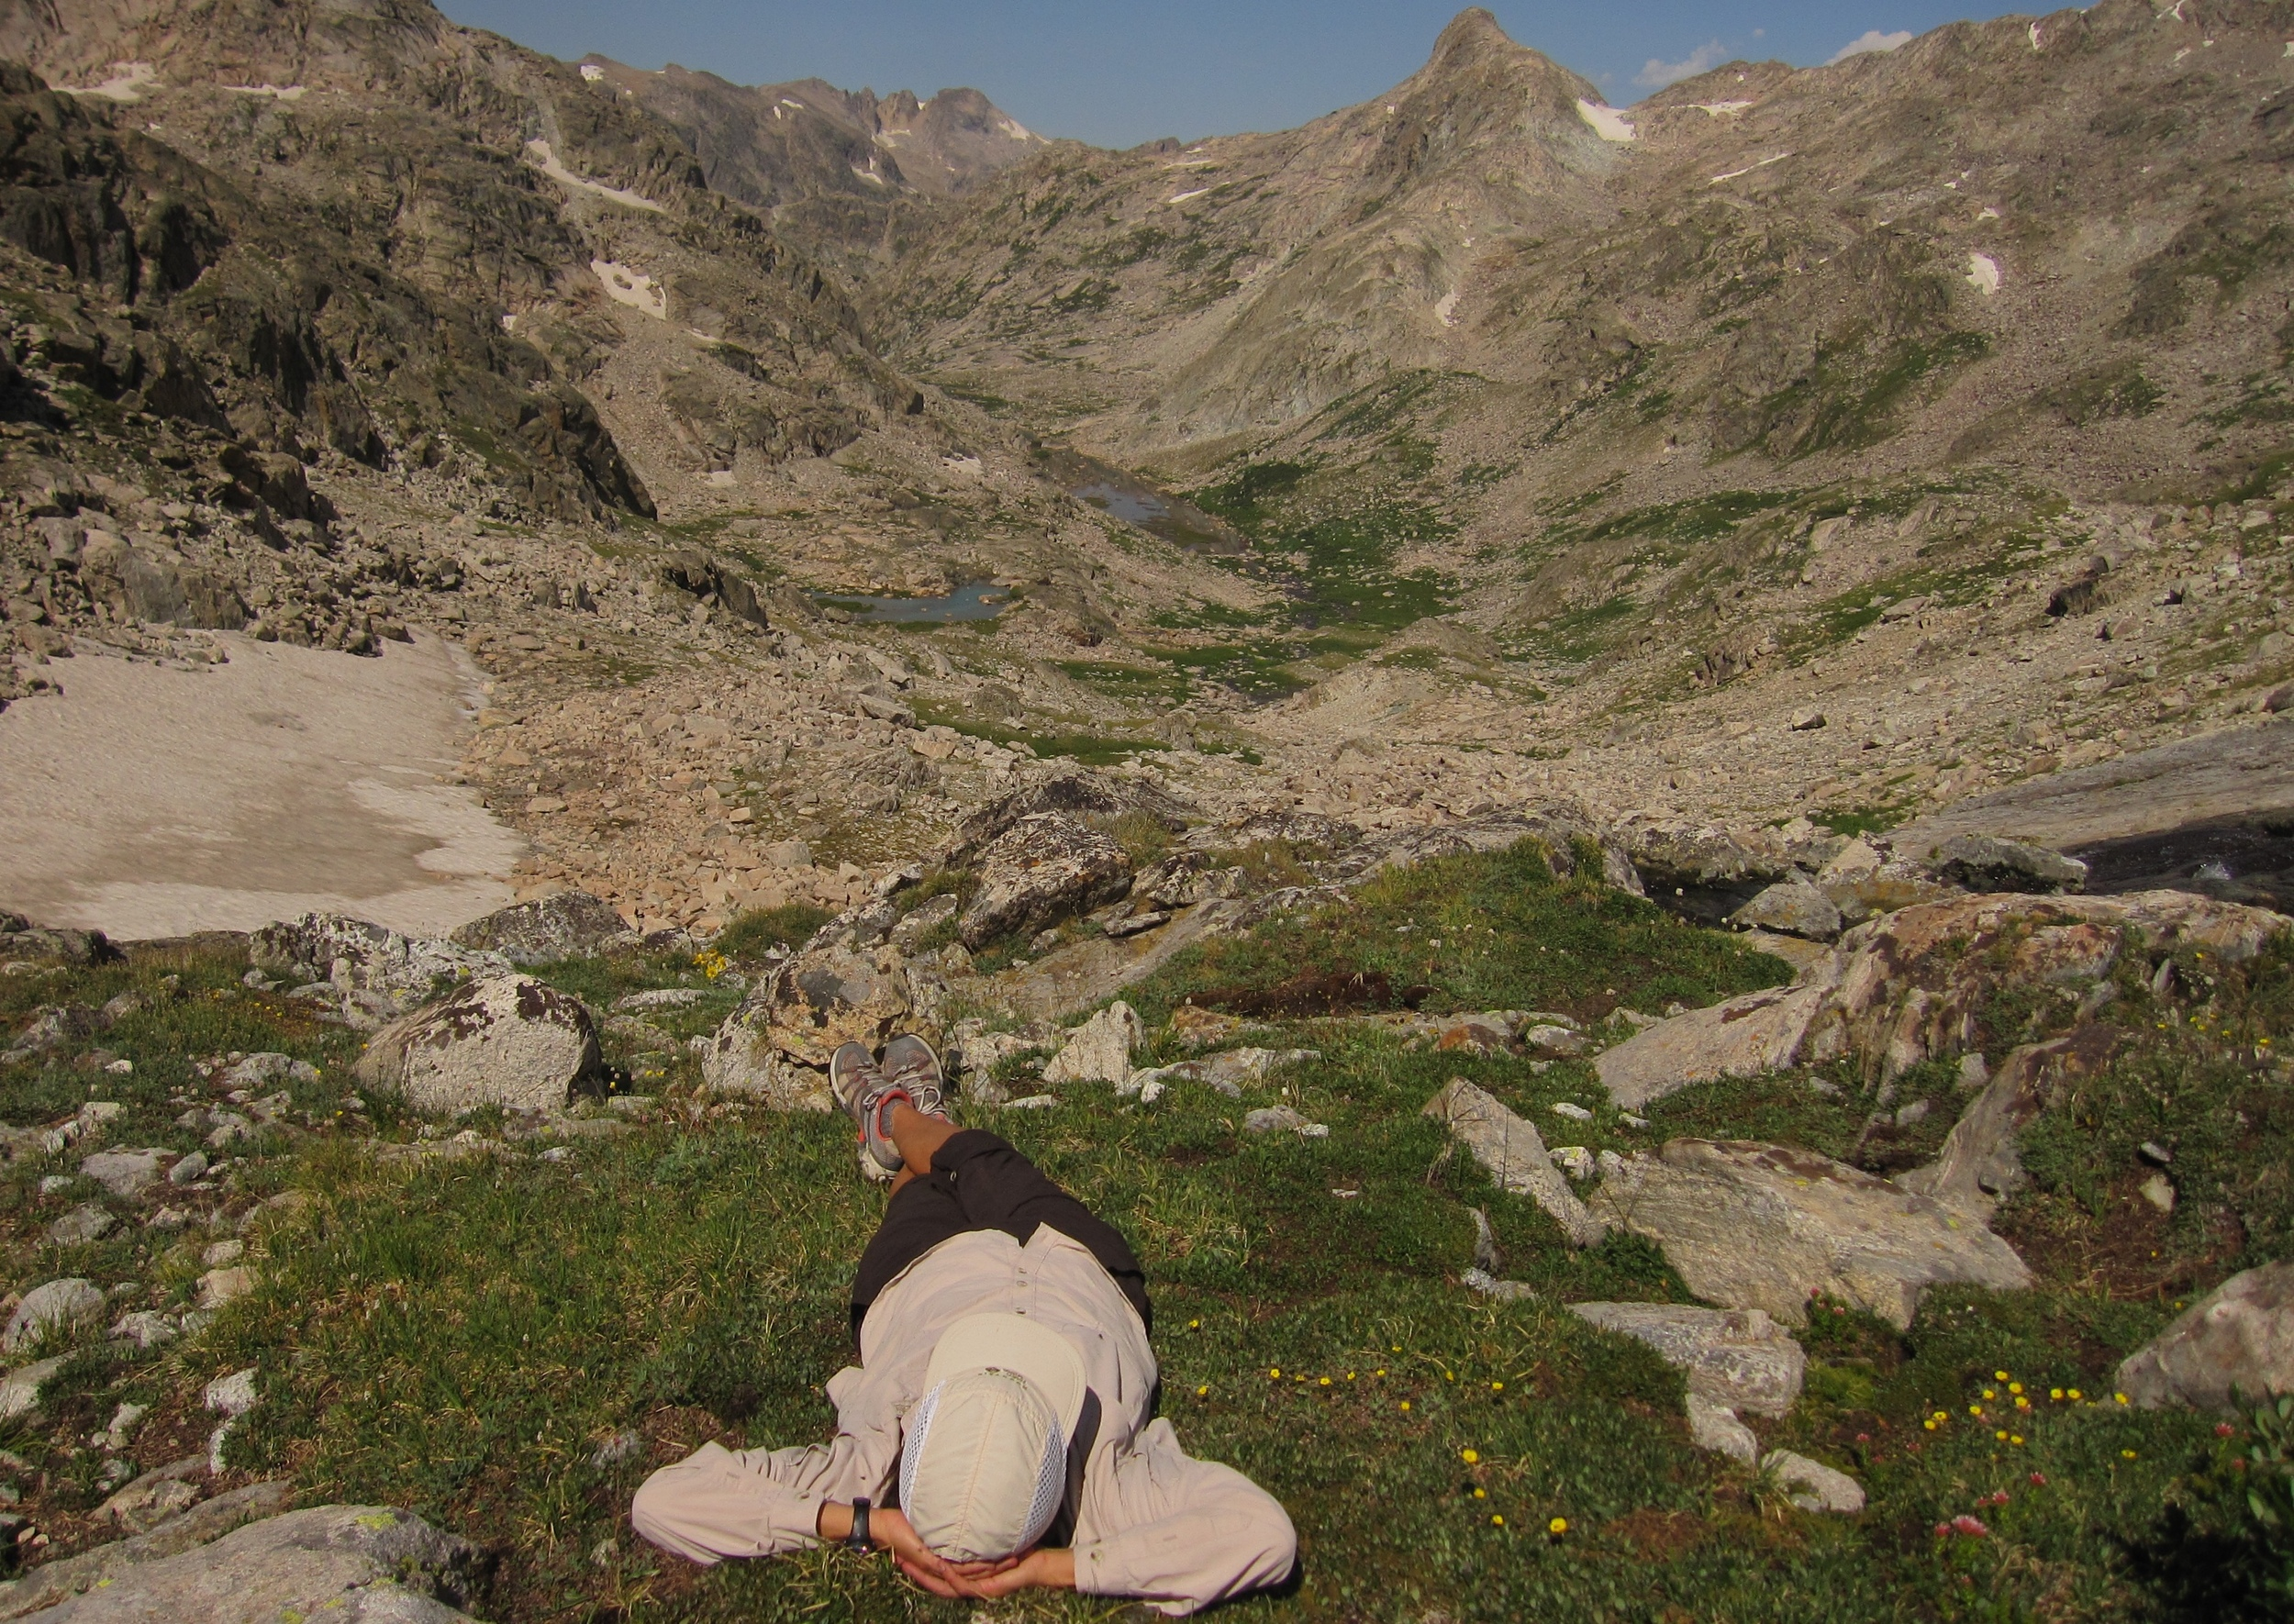 One of the finest lunch spots ever.  A small patch on flat grass on the steep descent from Knapsack Col.  This drainage on the west side of Knapsack Col contains the Stroud Glacier, which is the source of the mighty Green River. The river starts as a small creek below the glacier, then goes down the through the mountains and across the canyonlands of Utah, joins the Colorado River, and flows through the Mojave and Sonoran deserts to the Gulf of California in northern Mexico.